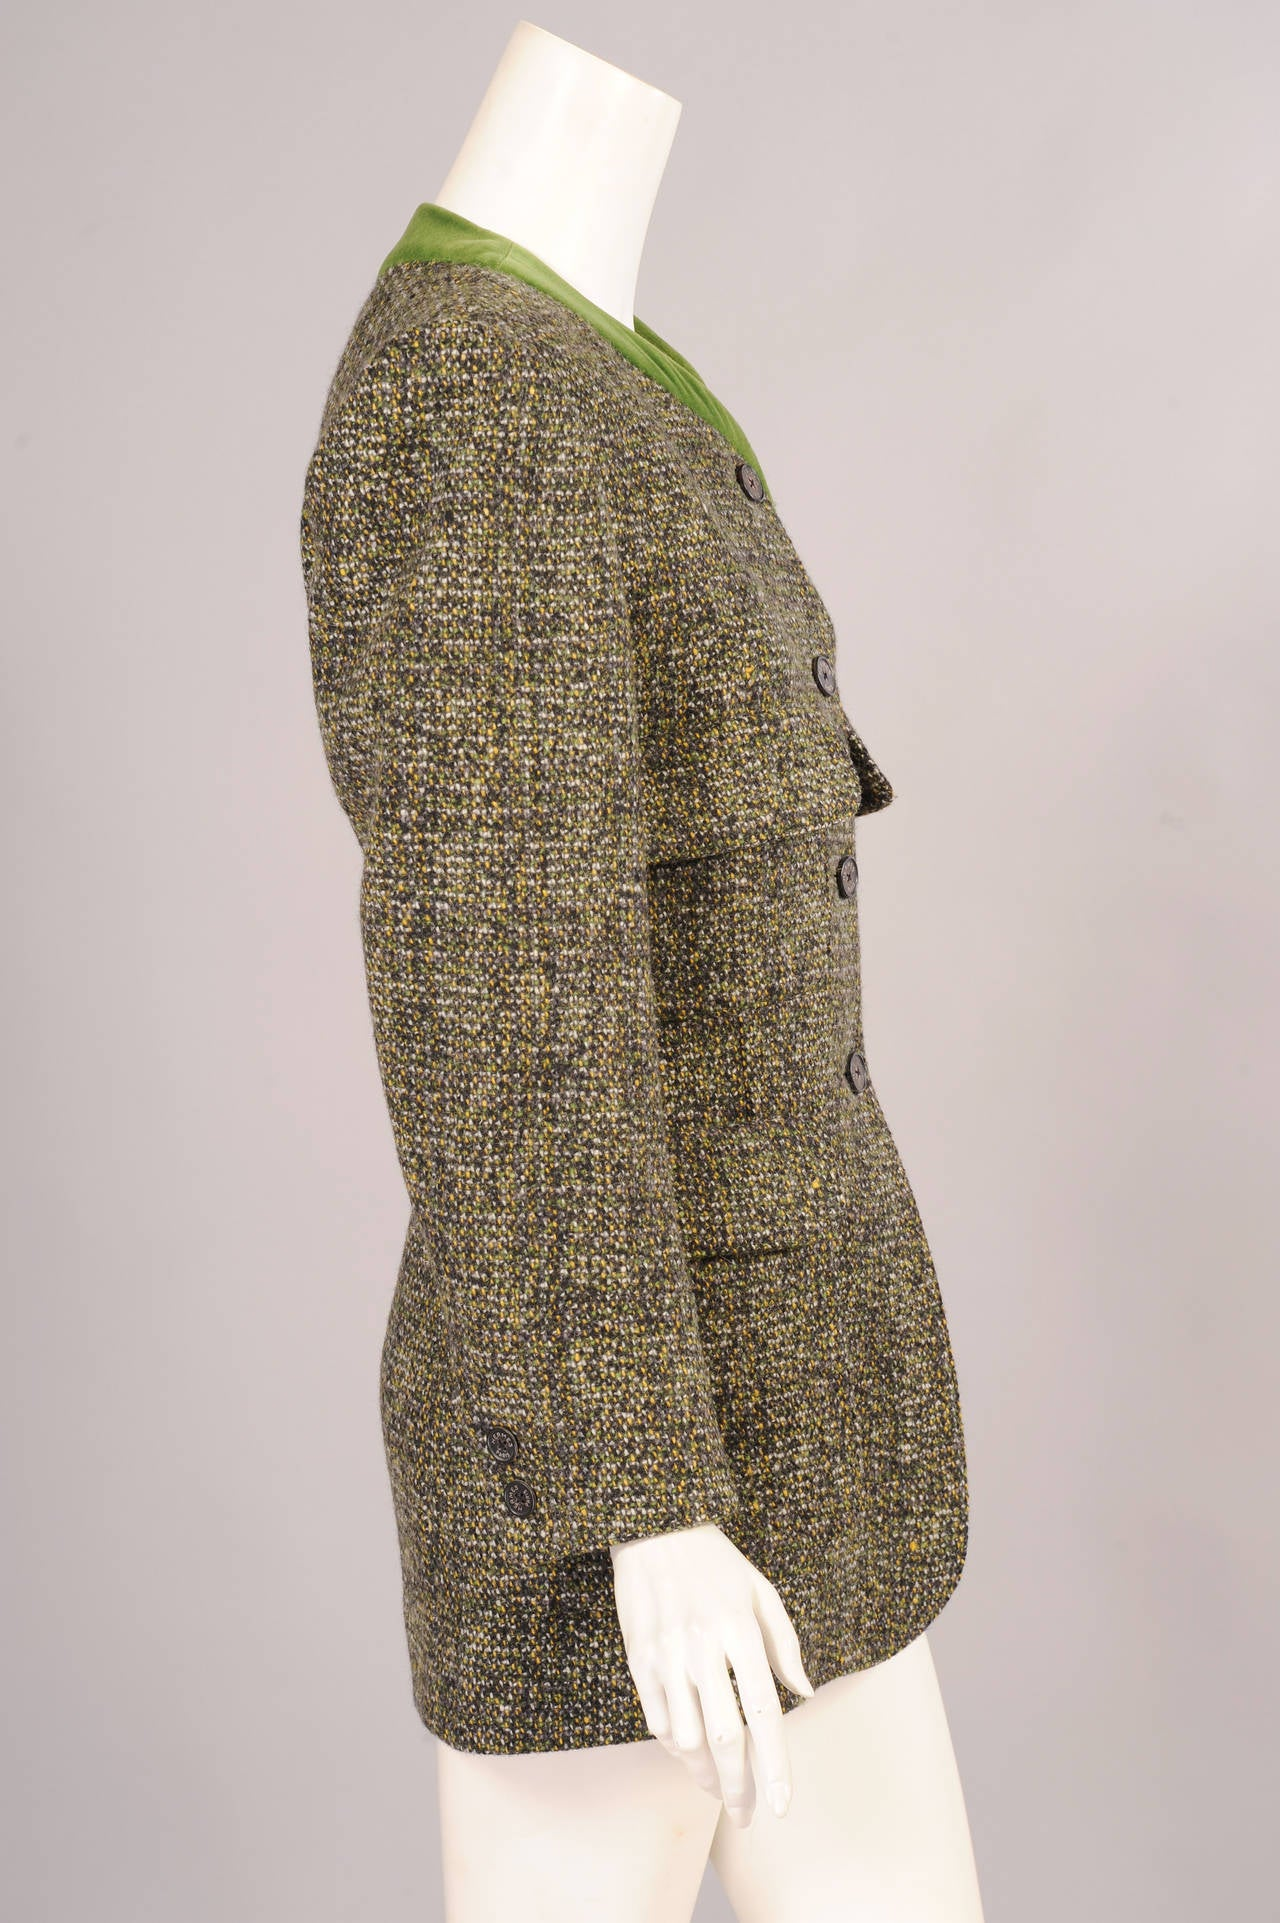 The moss green velvet collar of this jacket compliments the green wool tweed beautifully. The jacket has four generous pockets, Hermes stamped buttons at the center front and on the sleeves, and a wonderful red silk lining which is woven with the